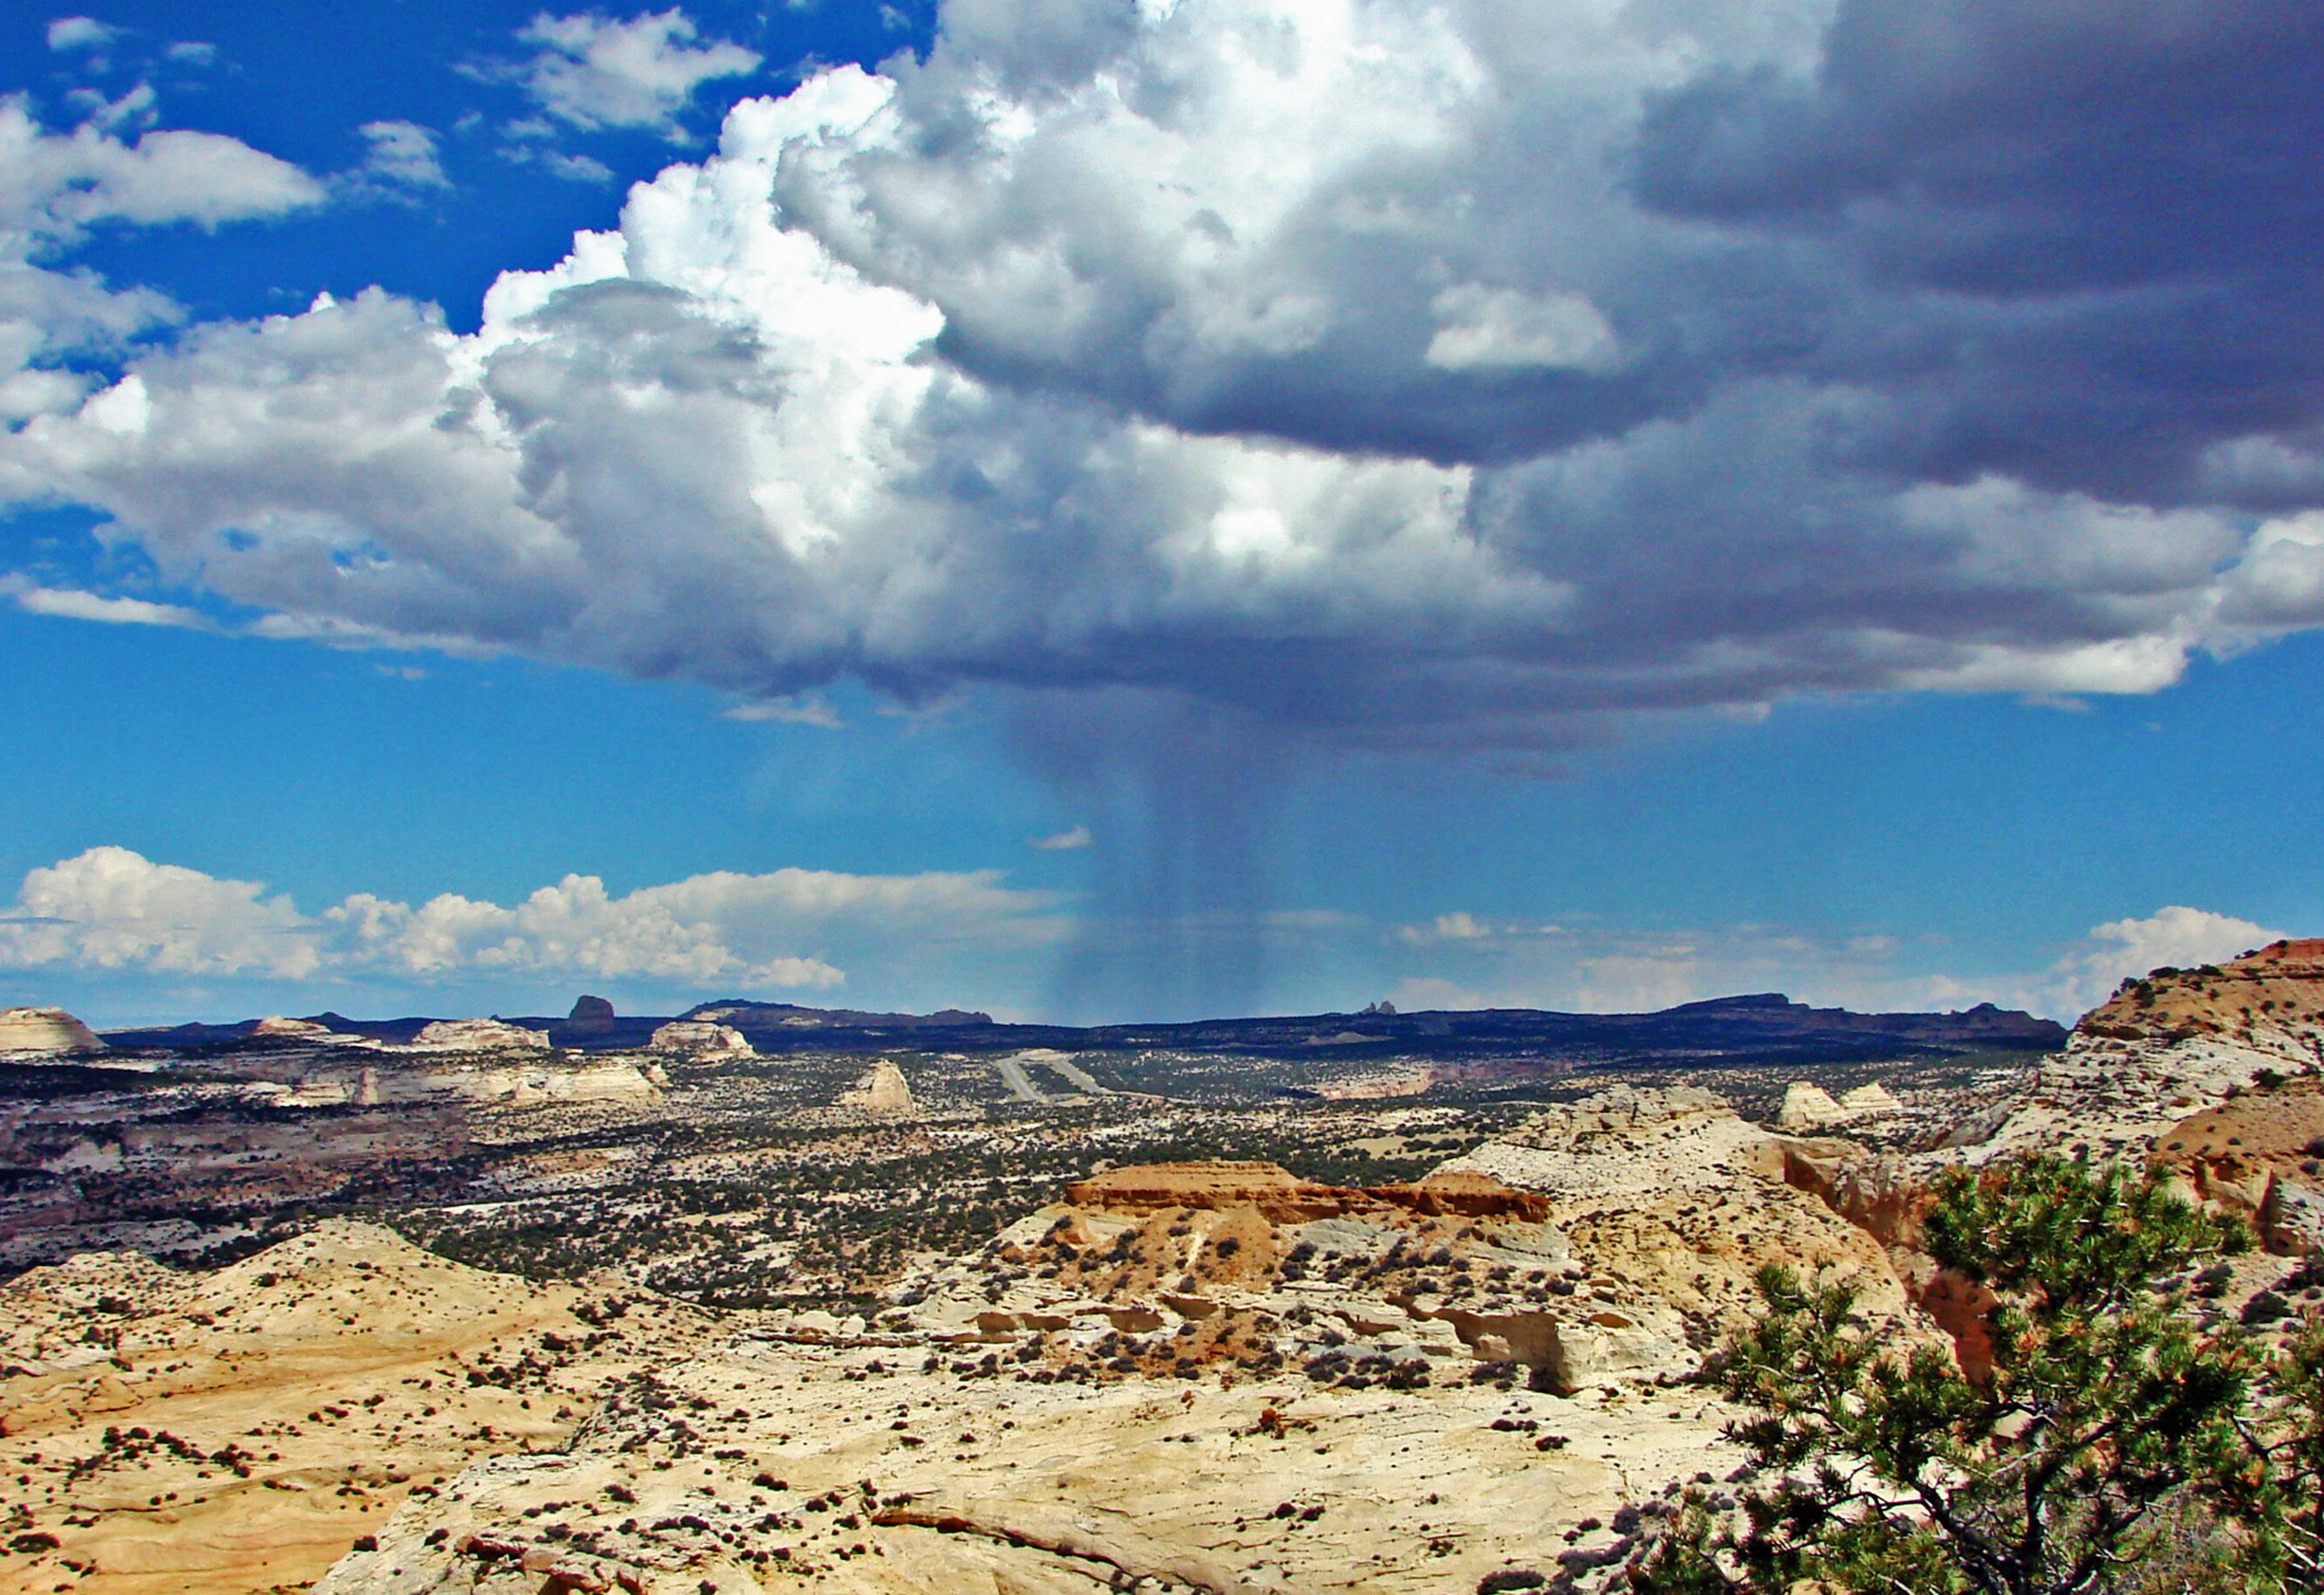 Environews: San Rafael Swell in danger | Catalyst Magazine on bryce canyon road map, mojave desert road map, four corners road map, washington road map, goblin valley road map, utah road map, moab road map, united states road map, zion road map, mesa verde national park road map, arizona road map,